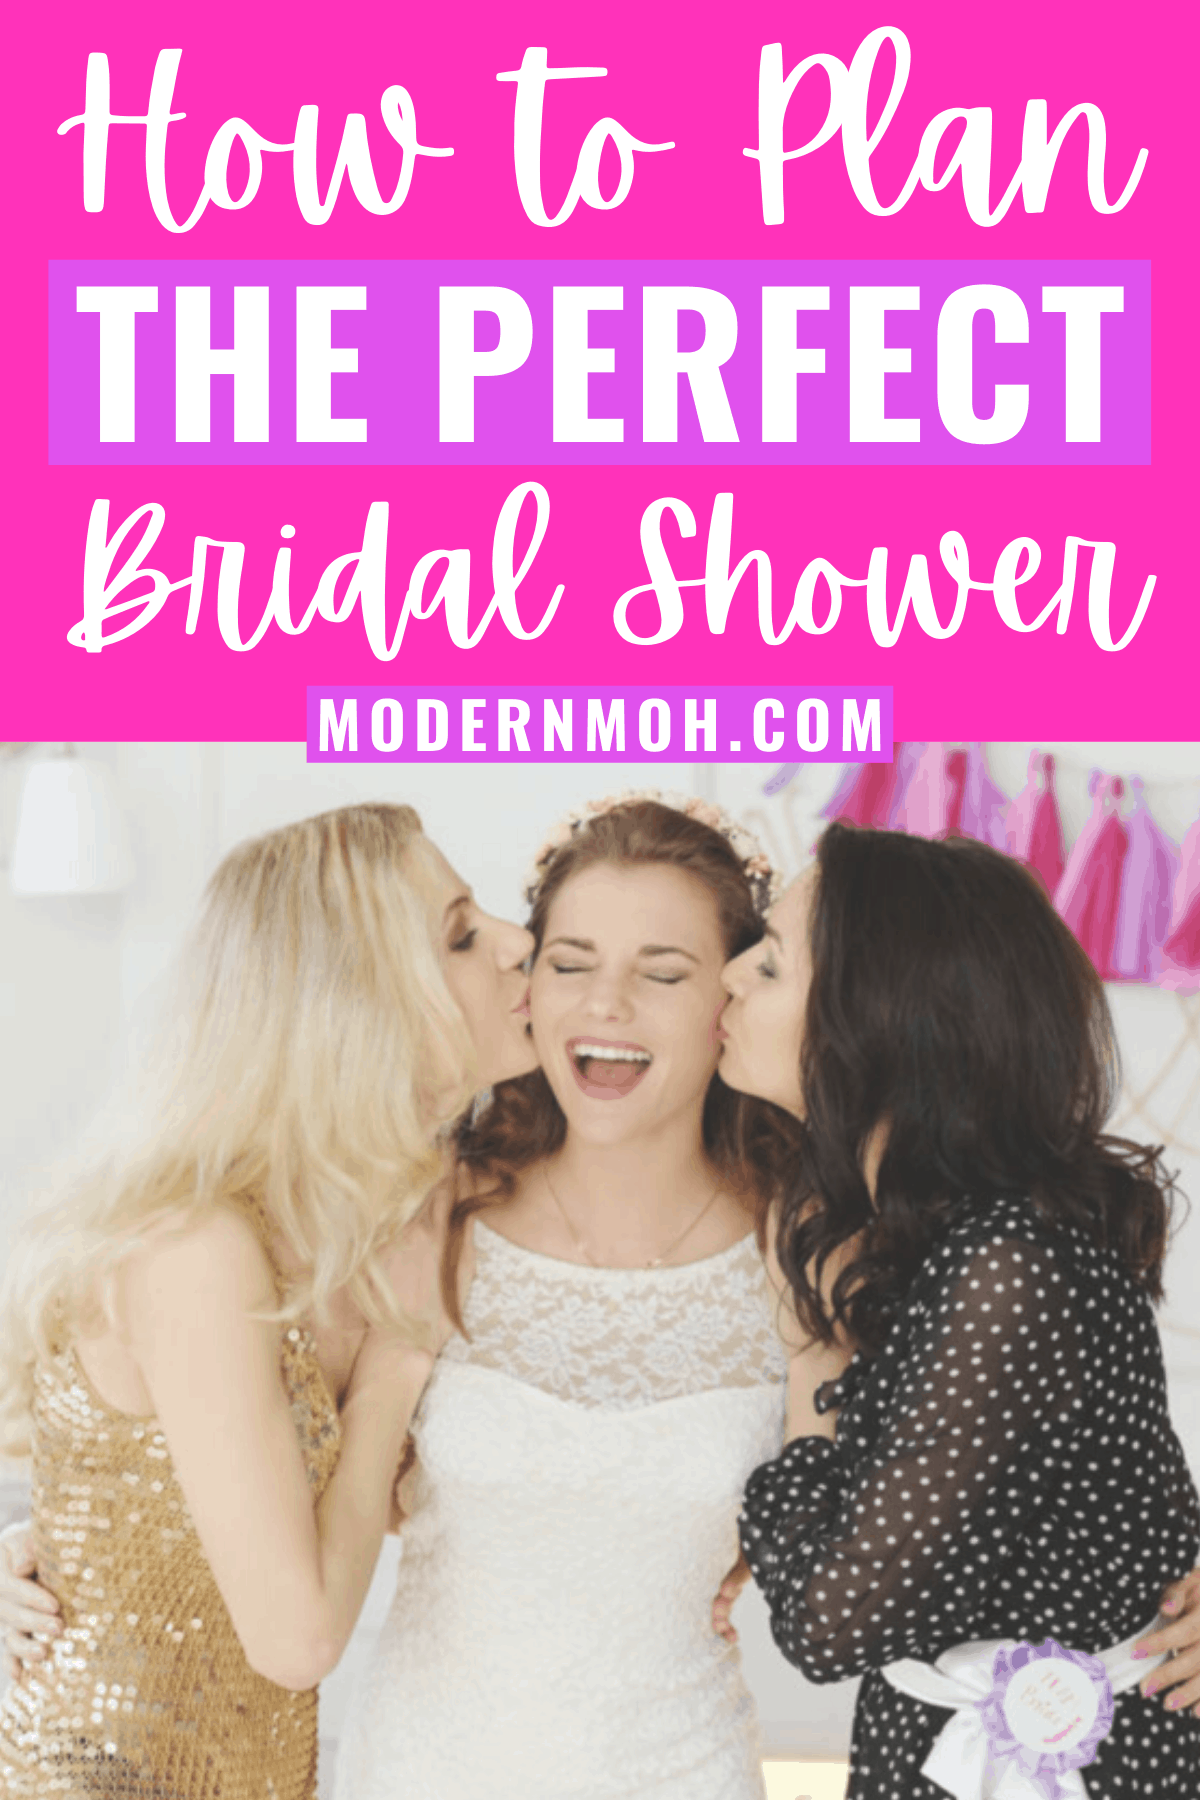 Bridal Shower Planning Checklist and Etiquette Tips